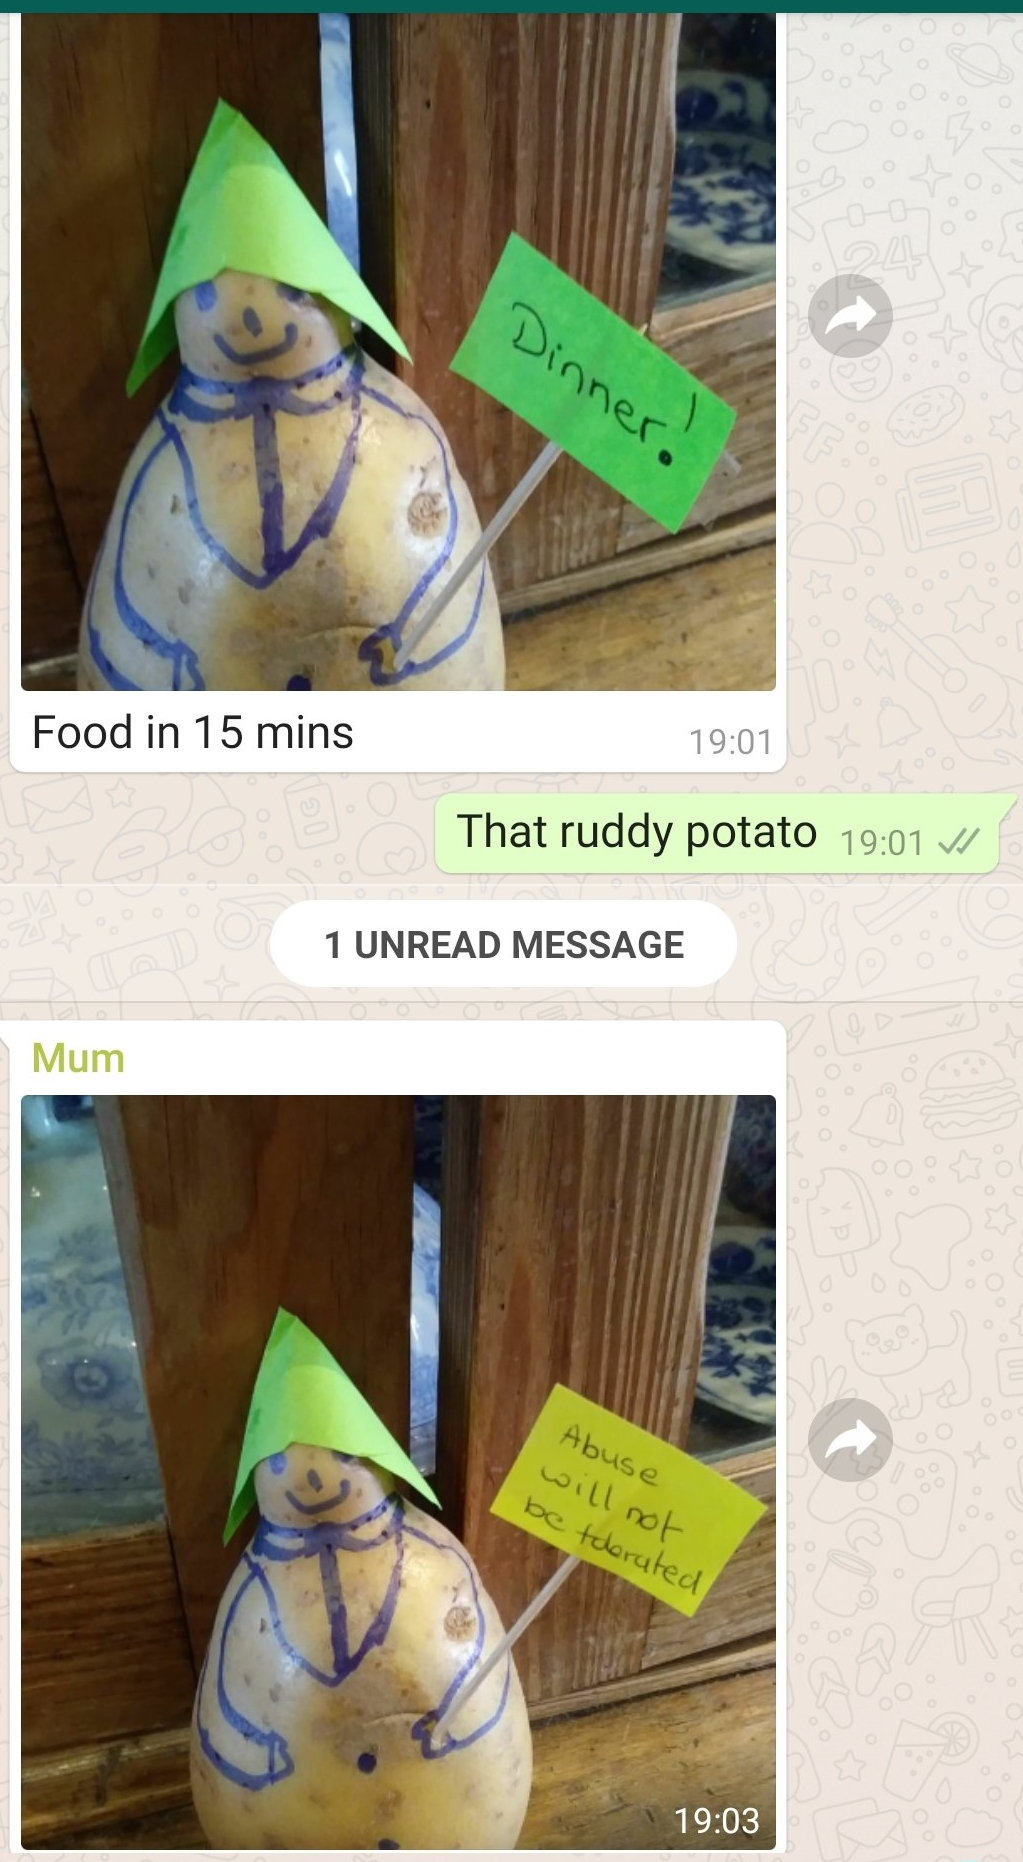 Mr Potato Abuse